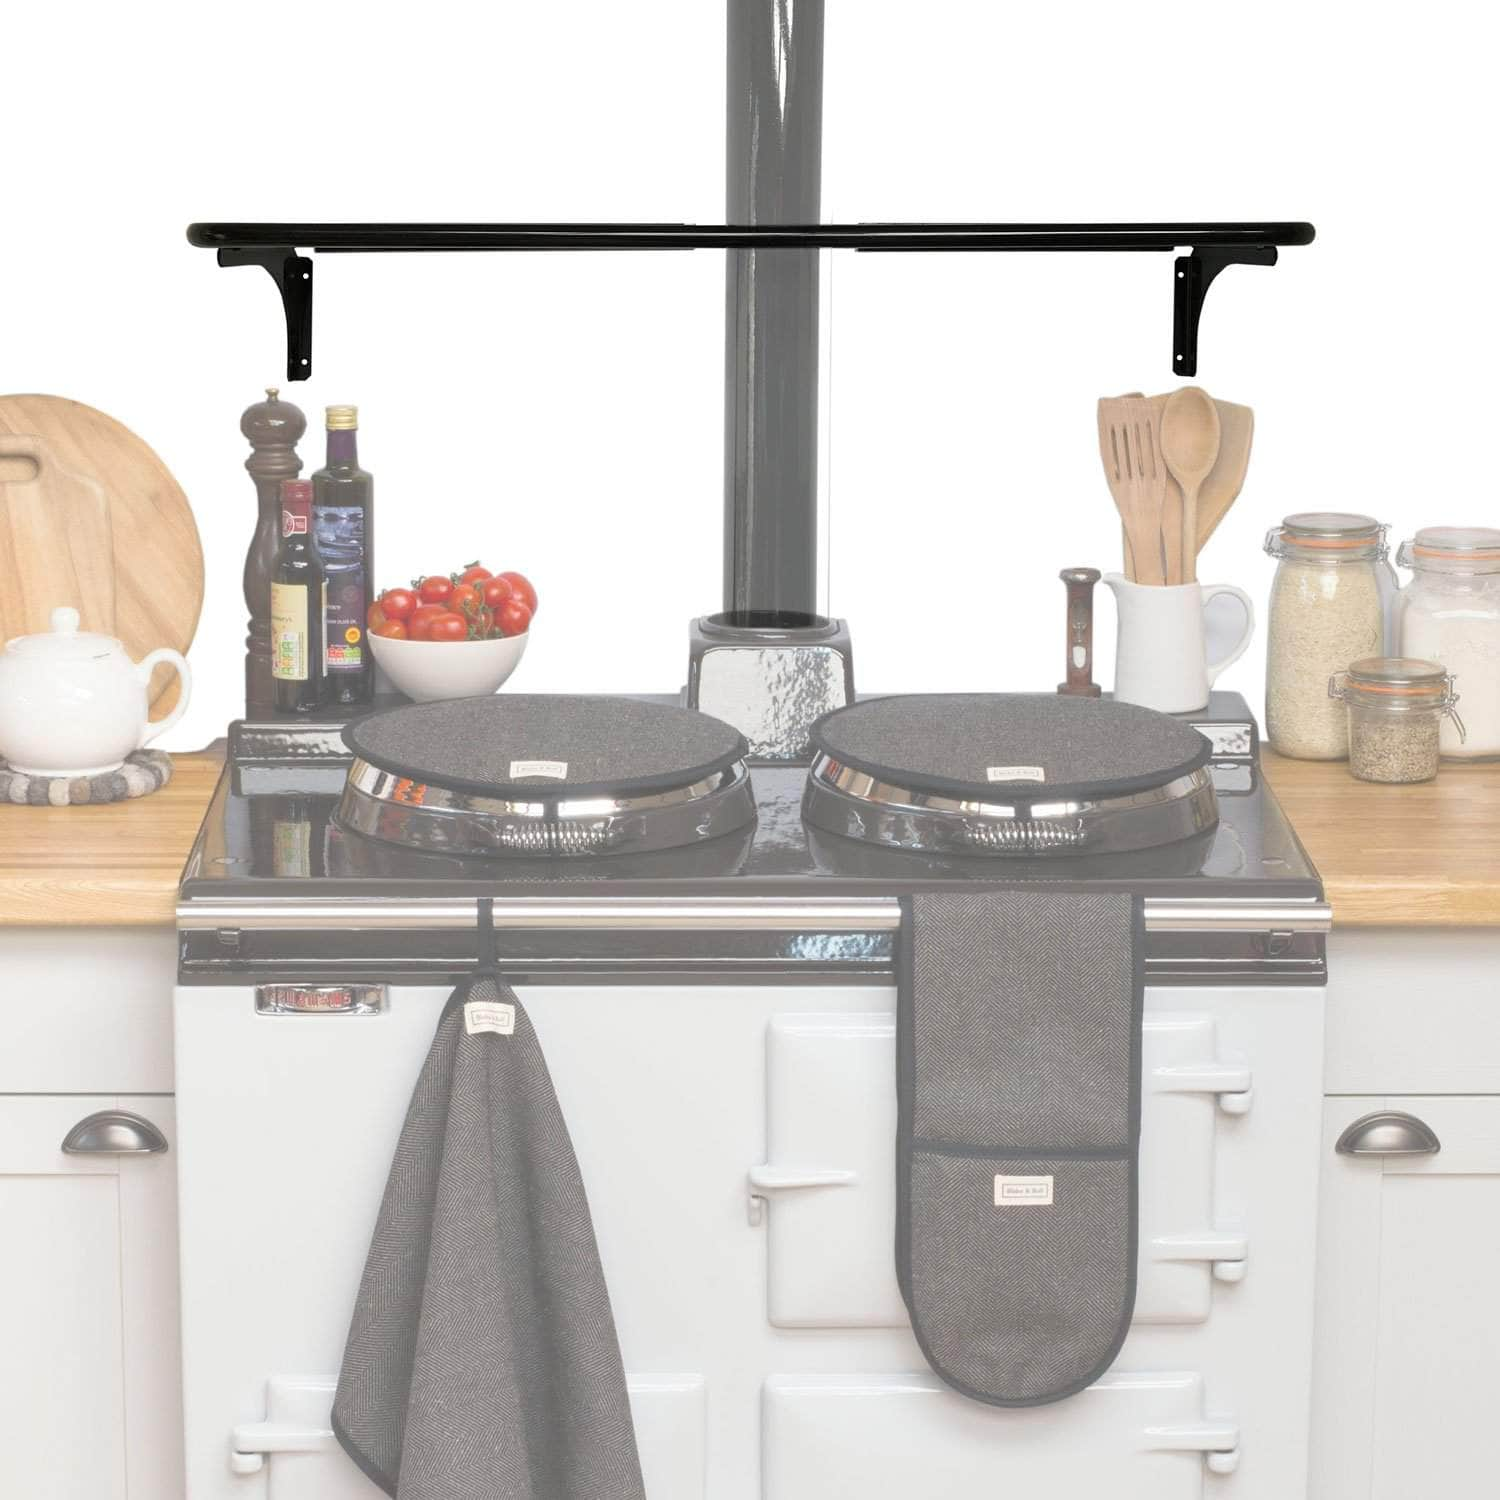 Wall pot rack with flue cut out for use with Aga range cooker (gloss black)